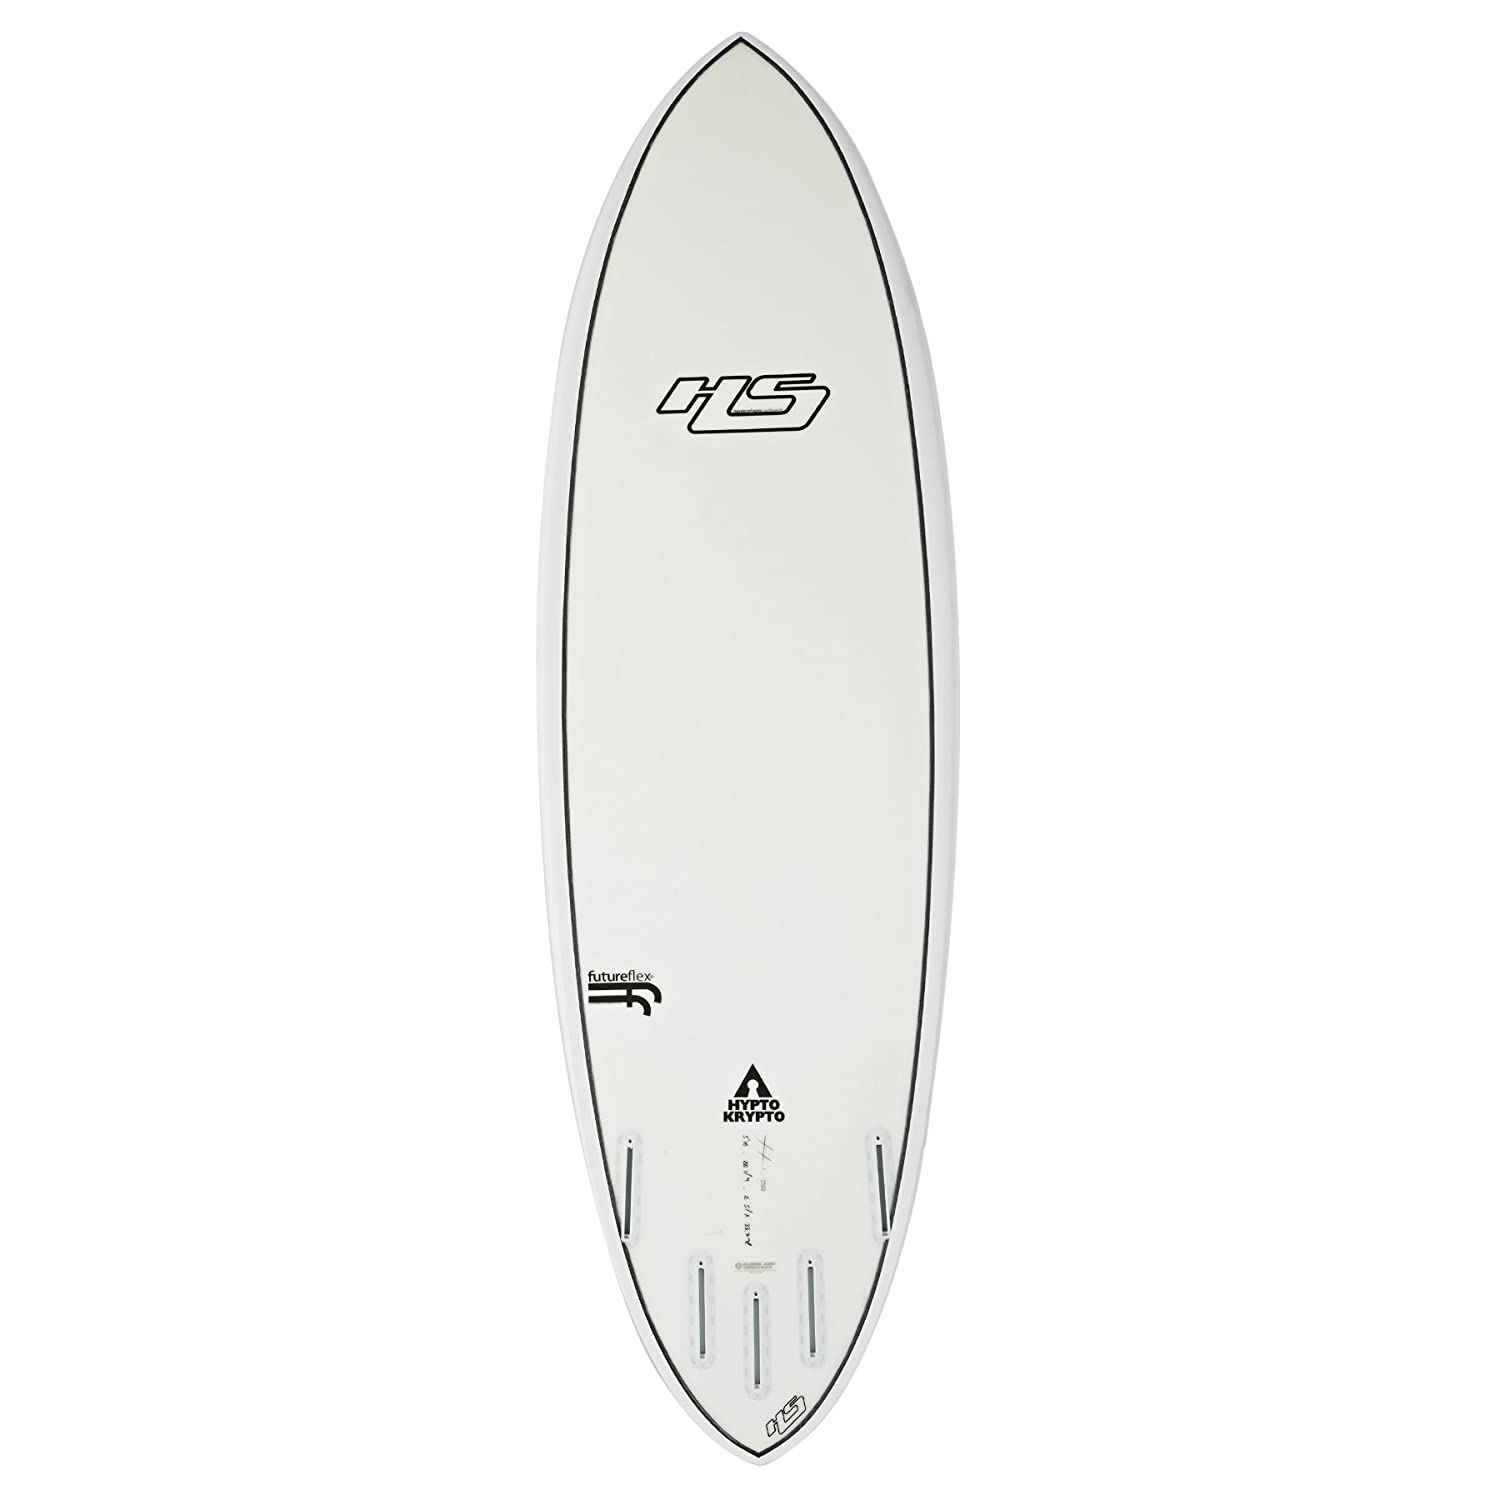 haydenshapes Hypto Krypto V futureflex Tabla de Surf - Haydenshapes, 6ft 4in, Rubia: Amazon.es: Deportes y aire libre